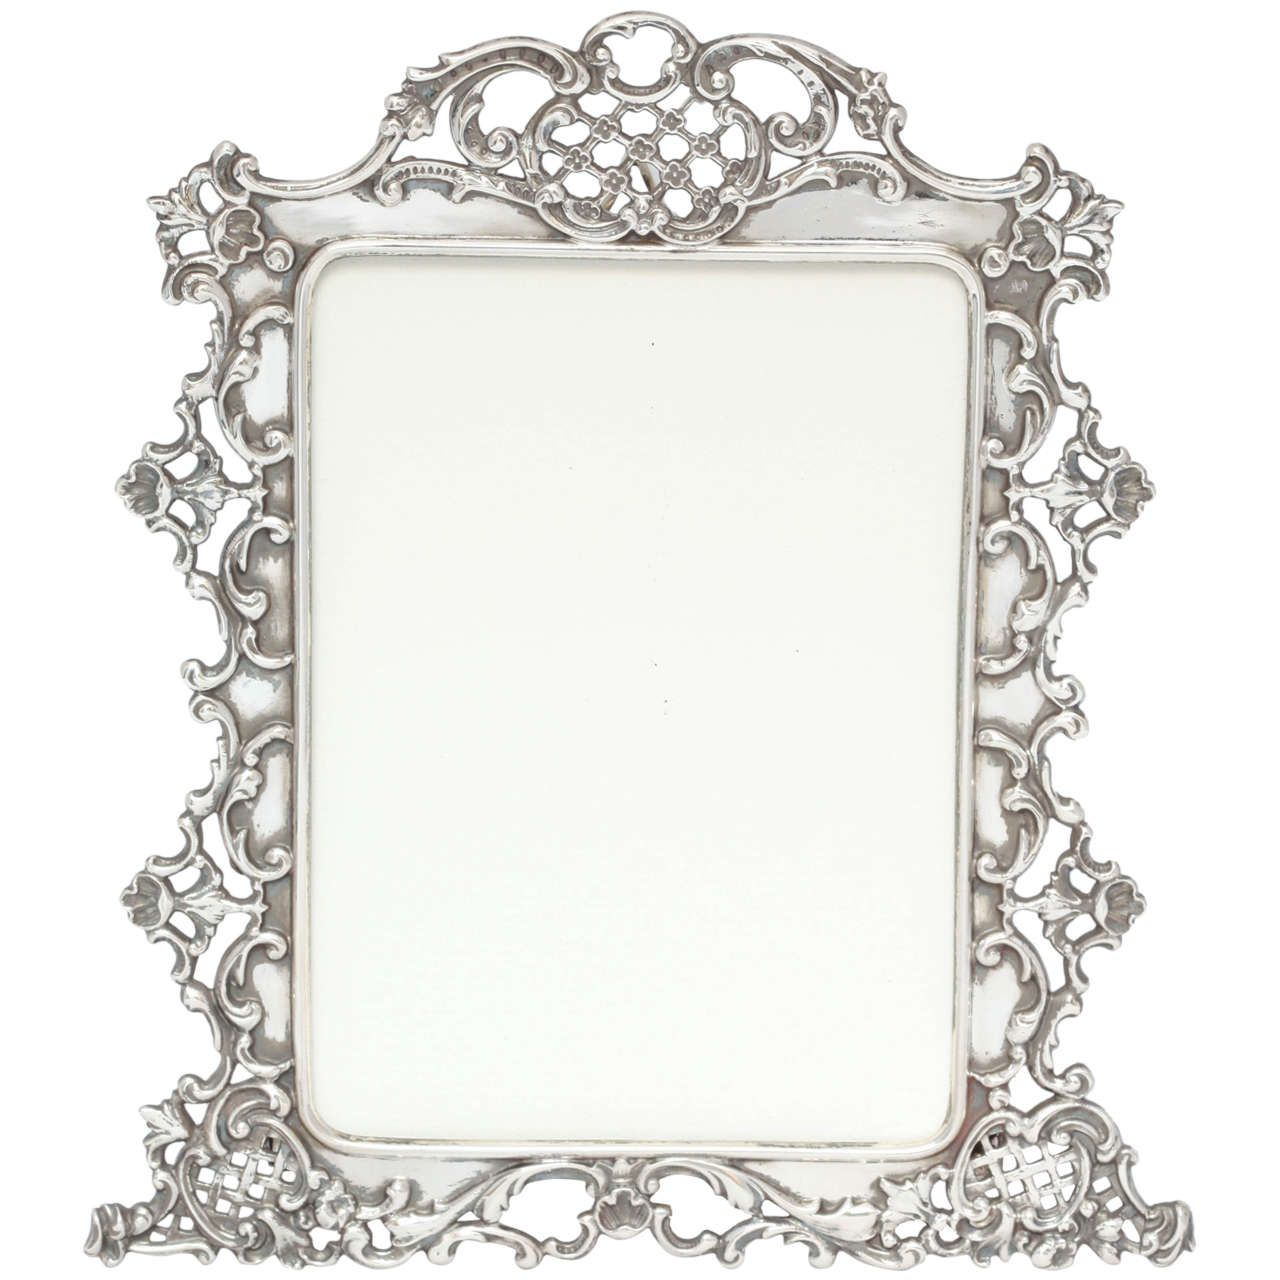 beautiful all sterling silver picture frame silver. Black Bedroom Furniture Sets. Home Design Ideas